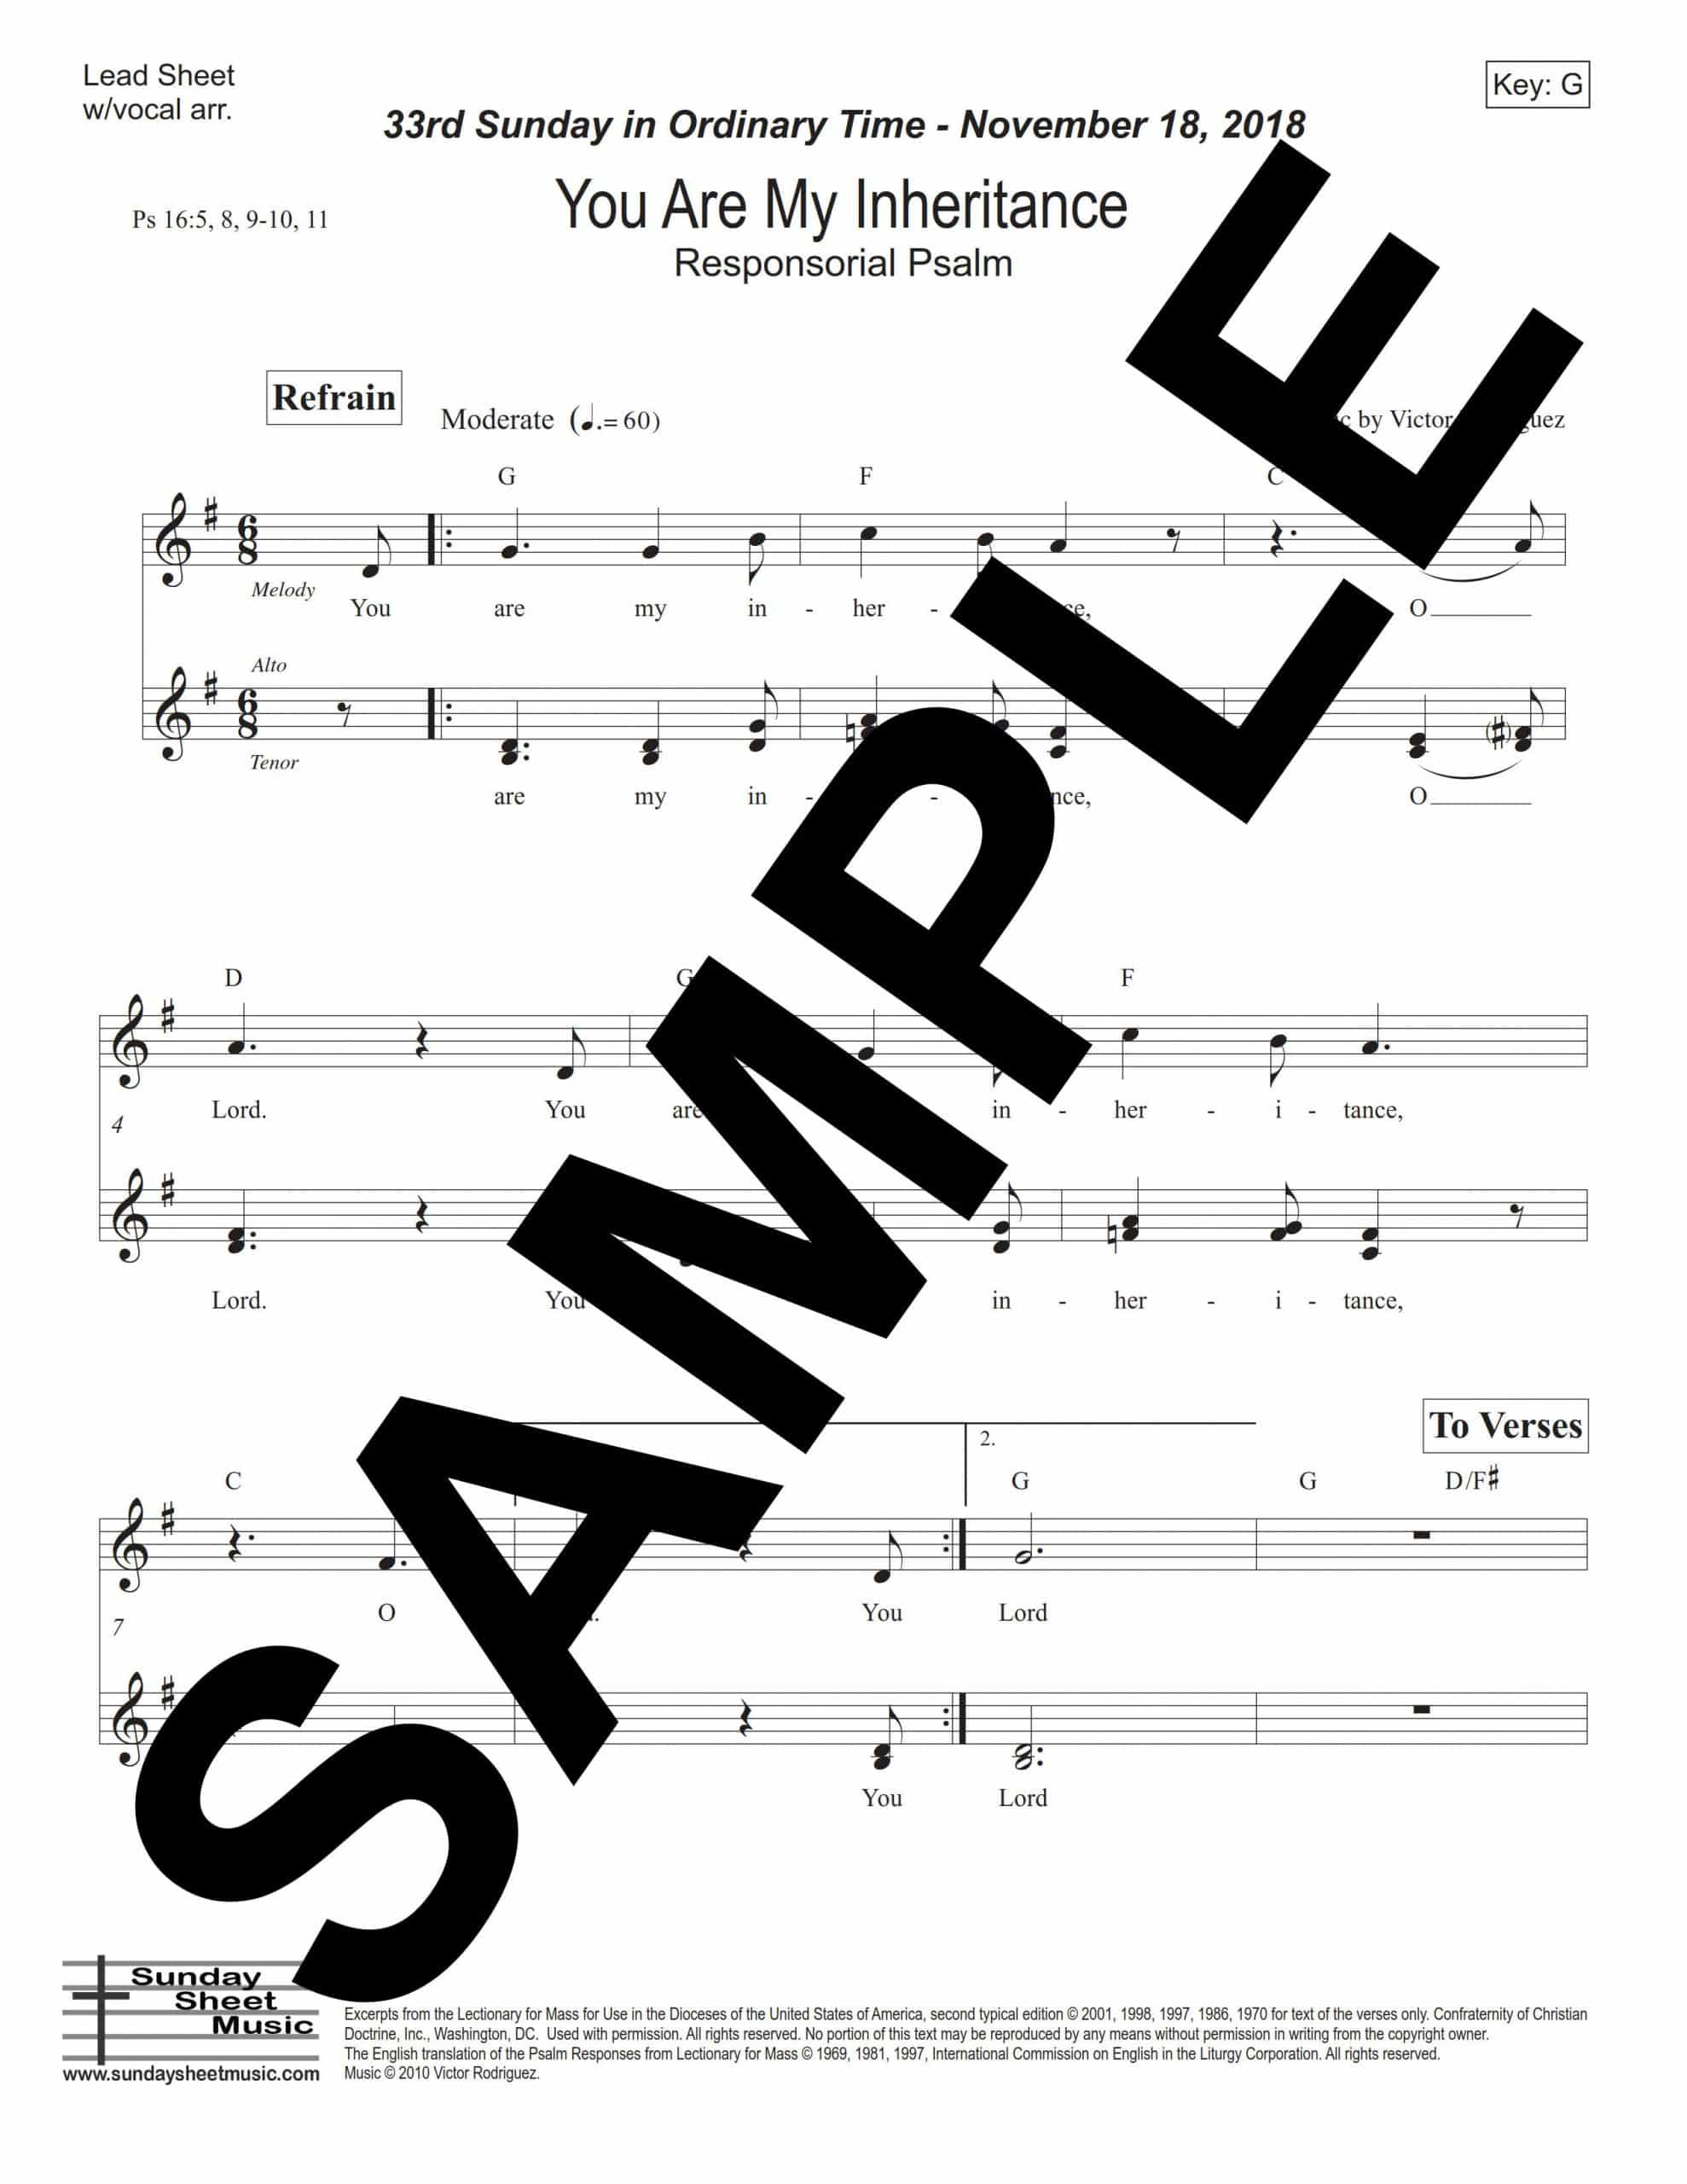 33rd Sunday You Are My Inheritance Ps 16 Sample Lead Sheet scaled